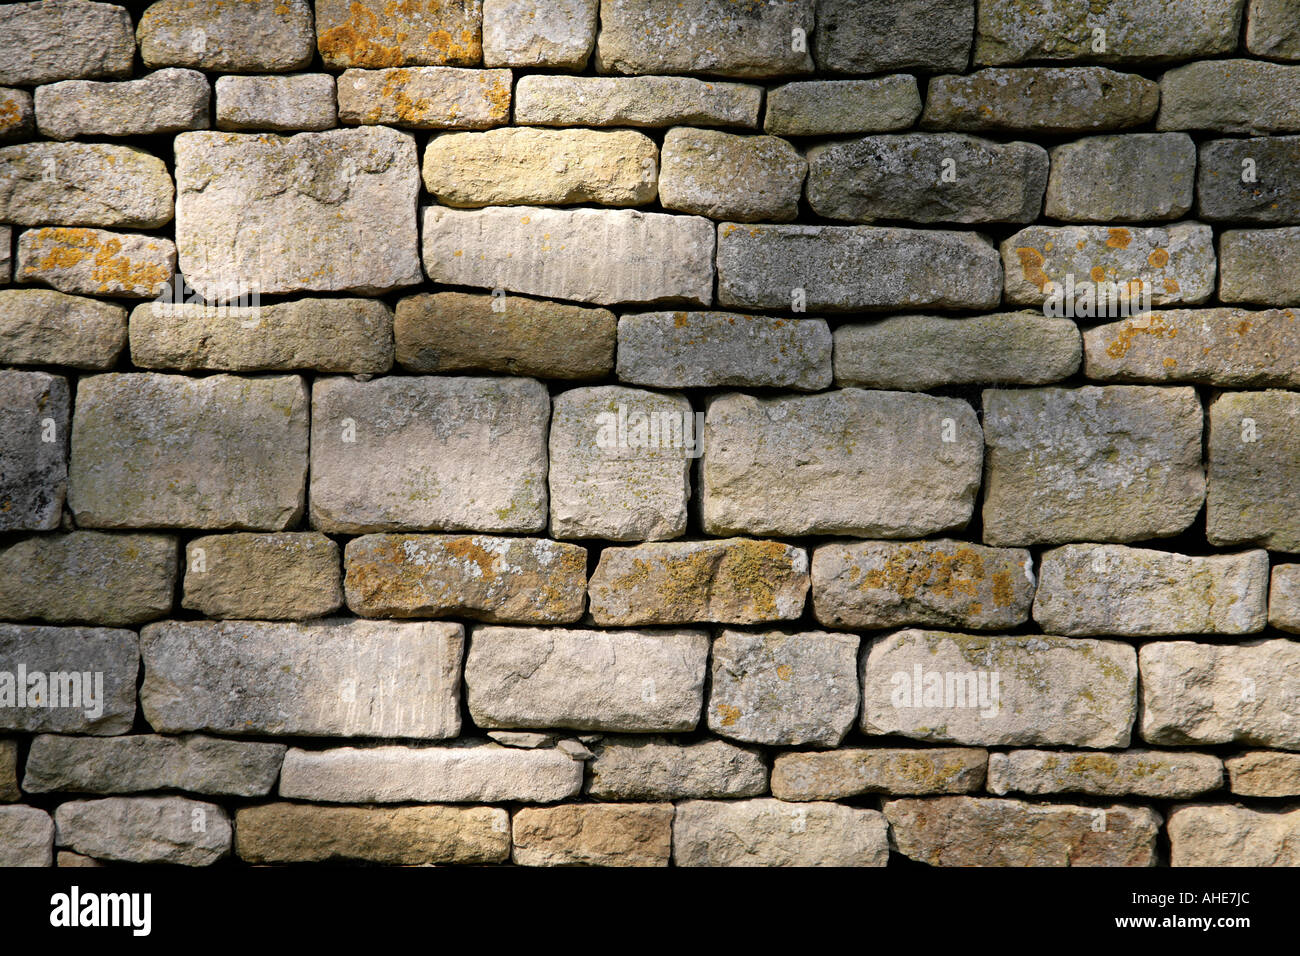 Stock Photo of a Cotswold Dry-Stone Wall - Stock Image